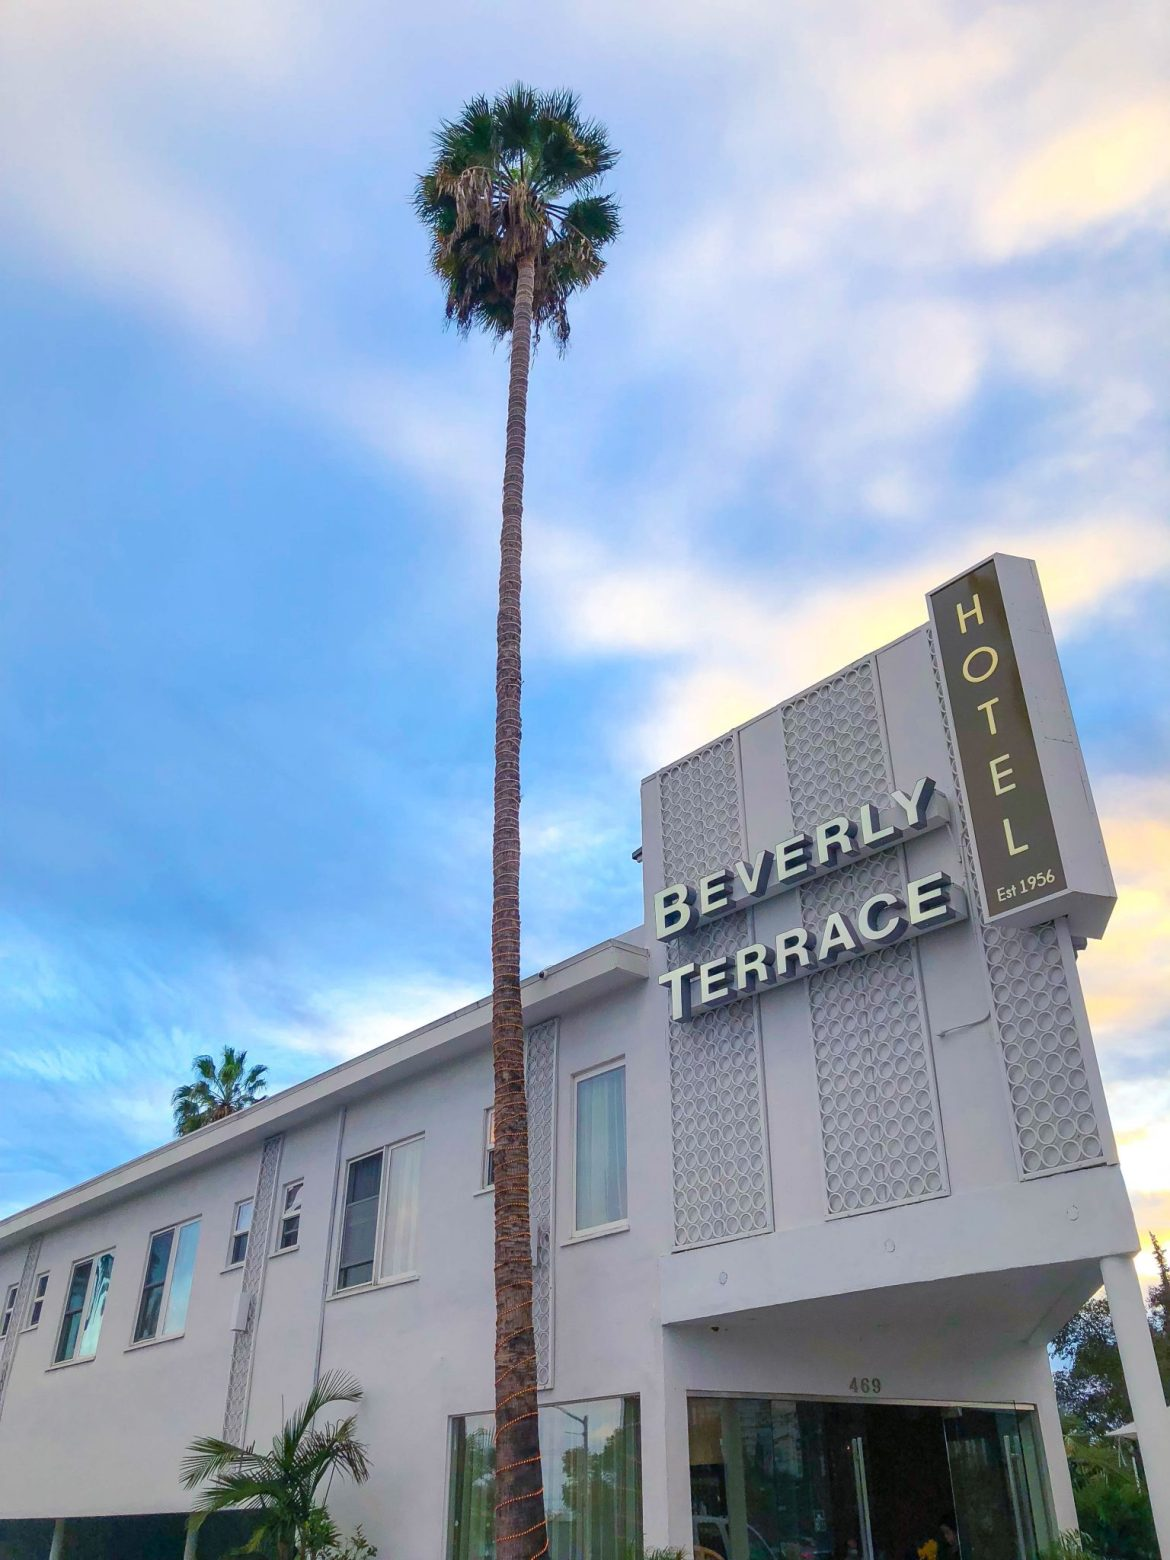 Beverly Terrace Hotel Los Angeles Kasey Ma TheStyleWright LA Travel